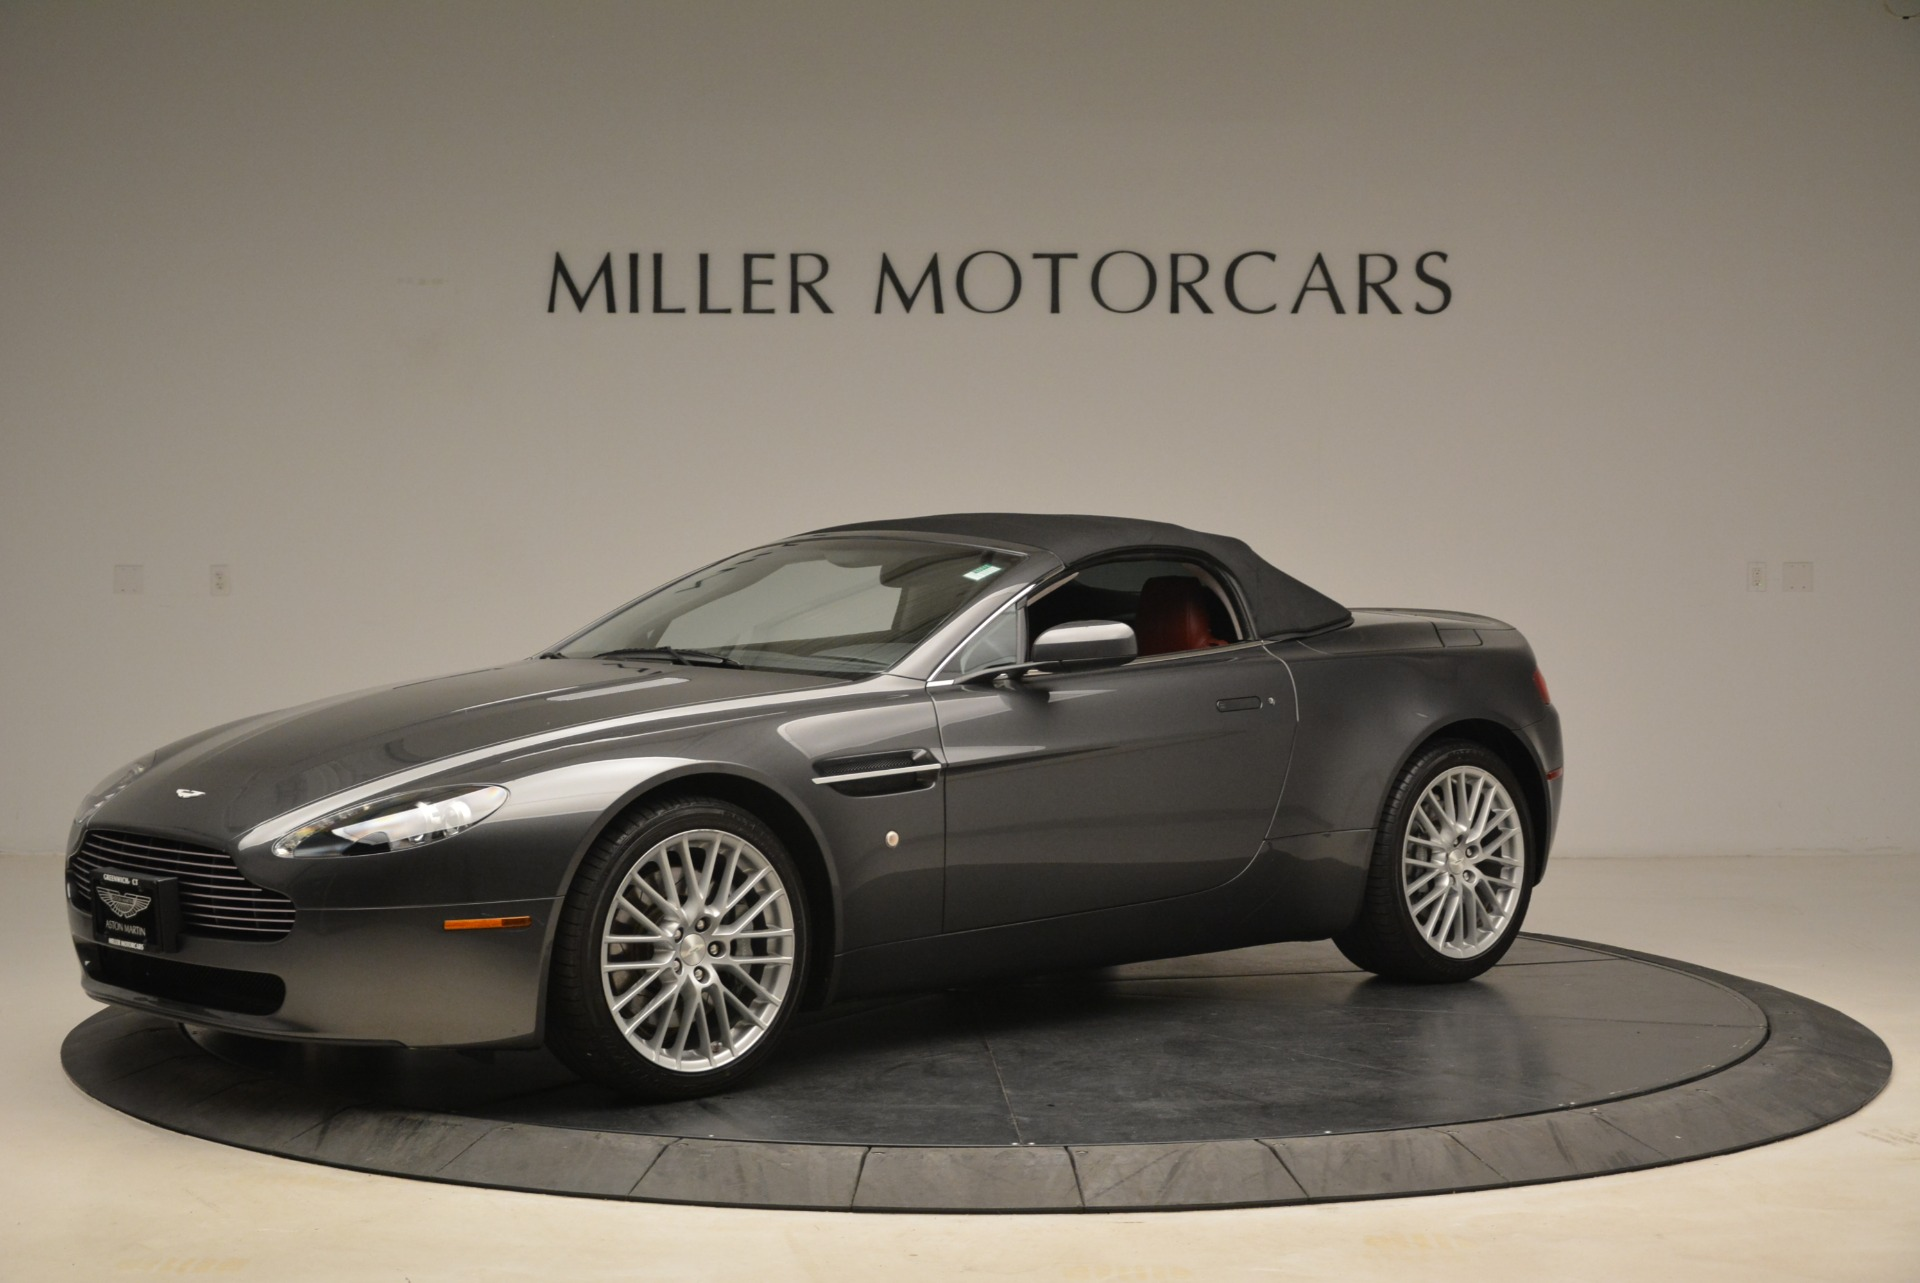 Used 2009 Aston Martin V8 Vantage Roadster For Sale In Greenwich, CT 2123_p14